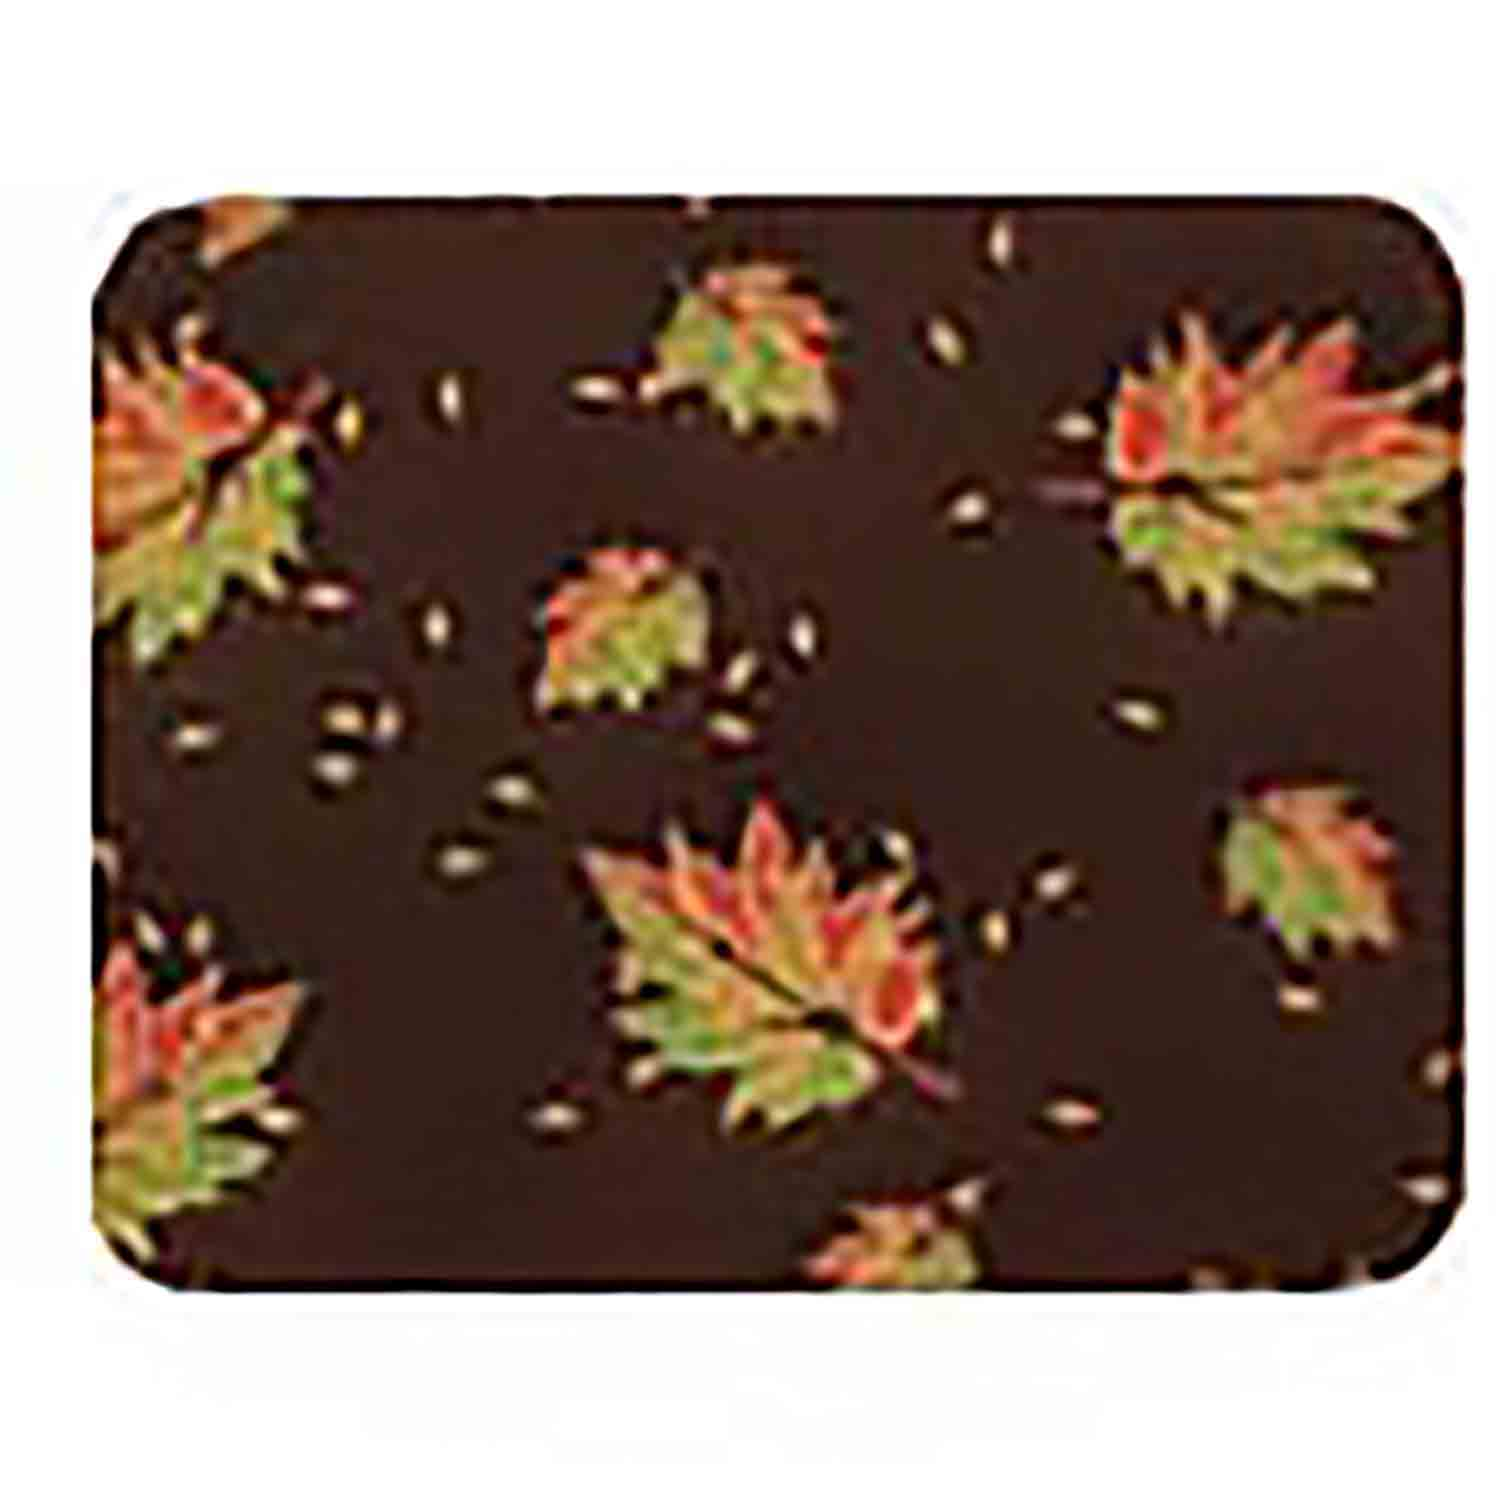 Chocolate Transfer Sheet - Autumn Leaves